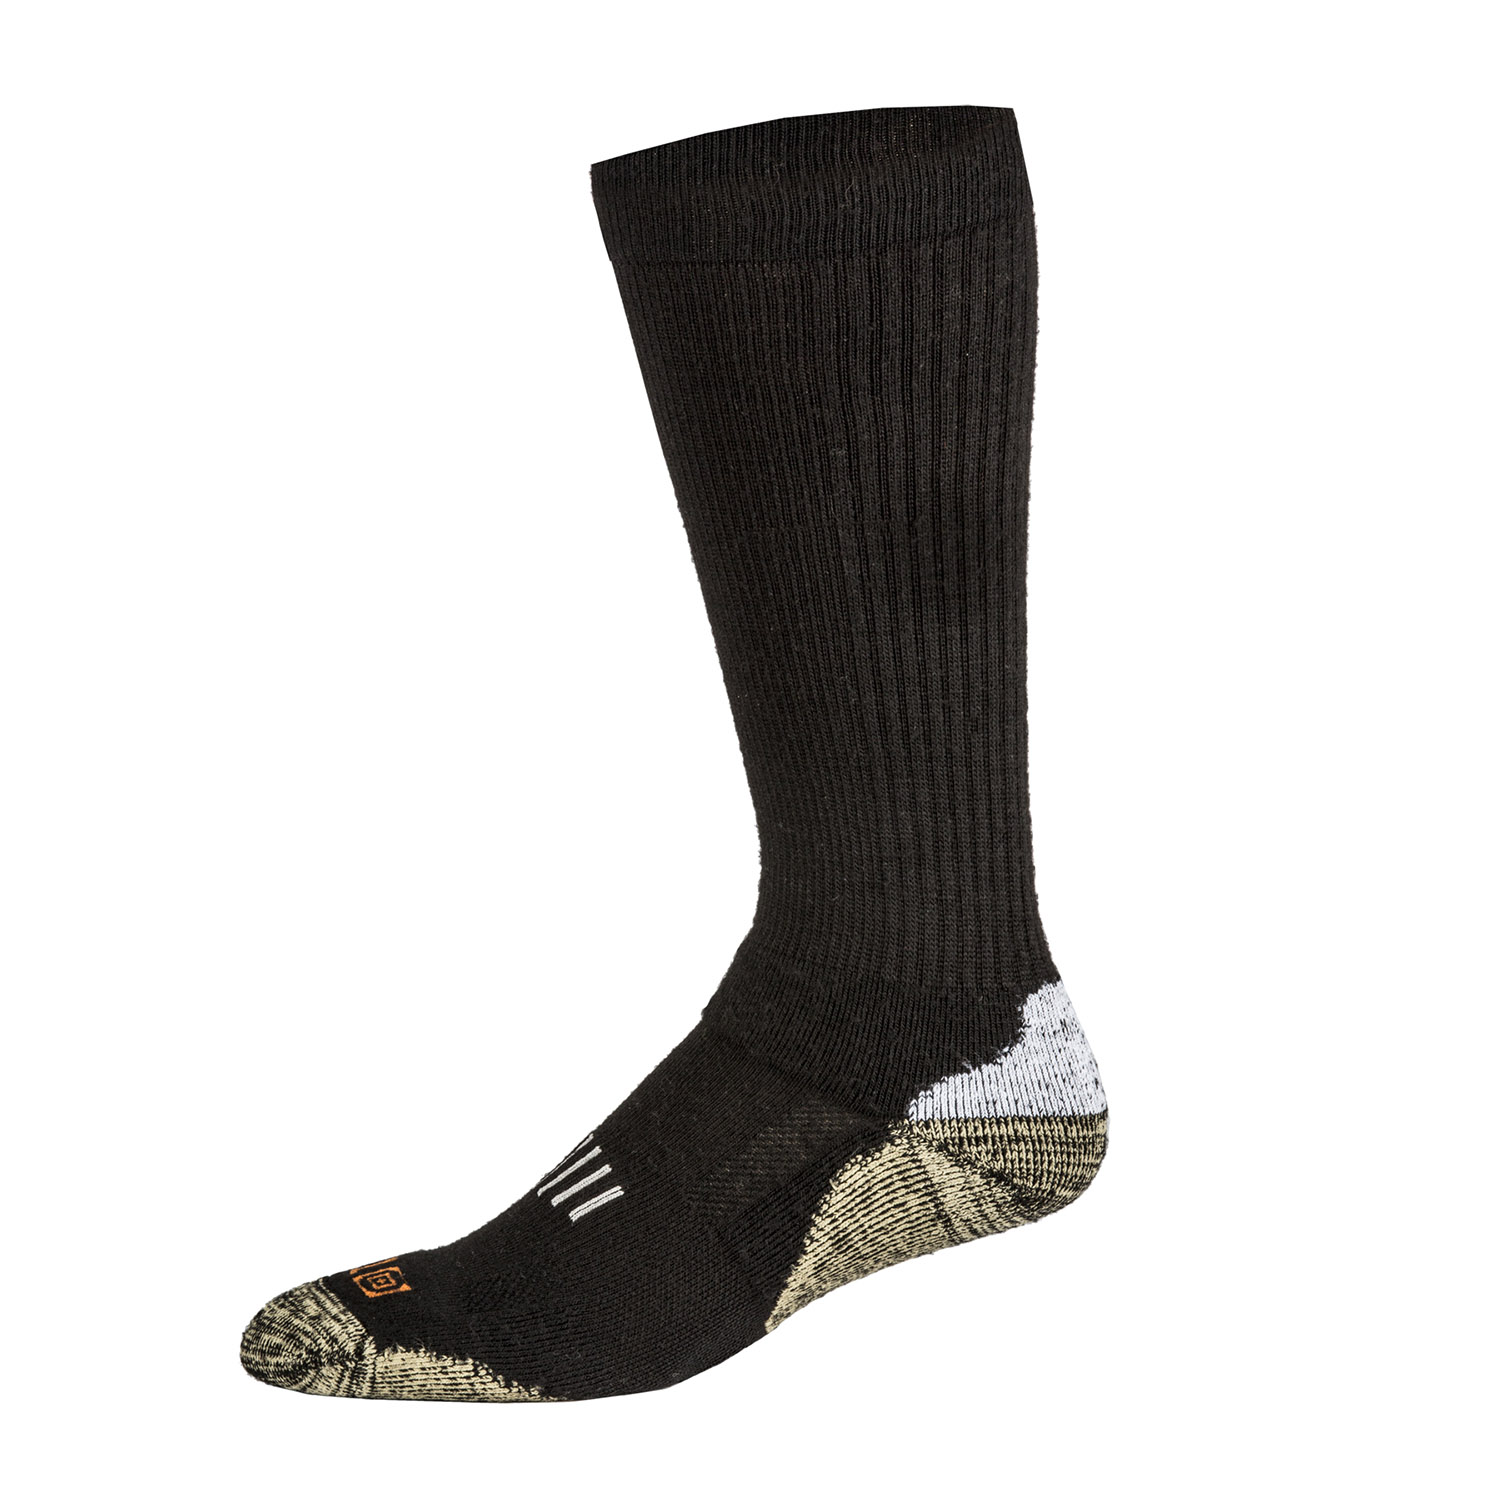 5.11 Tactical Merino Crew Socks